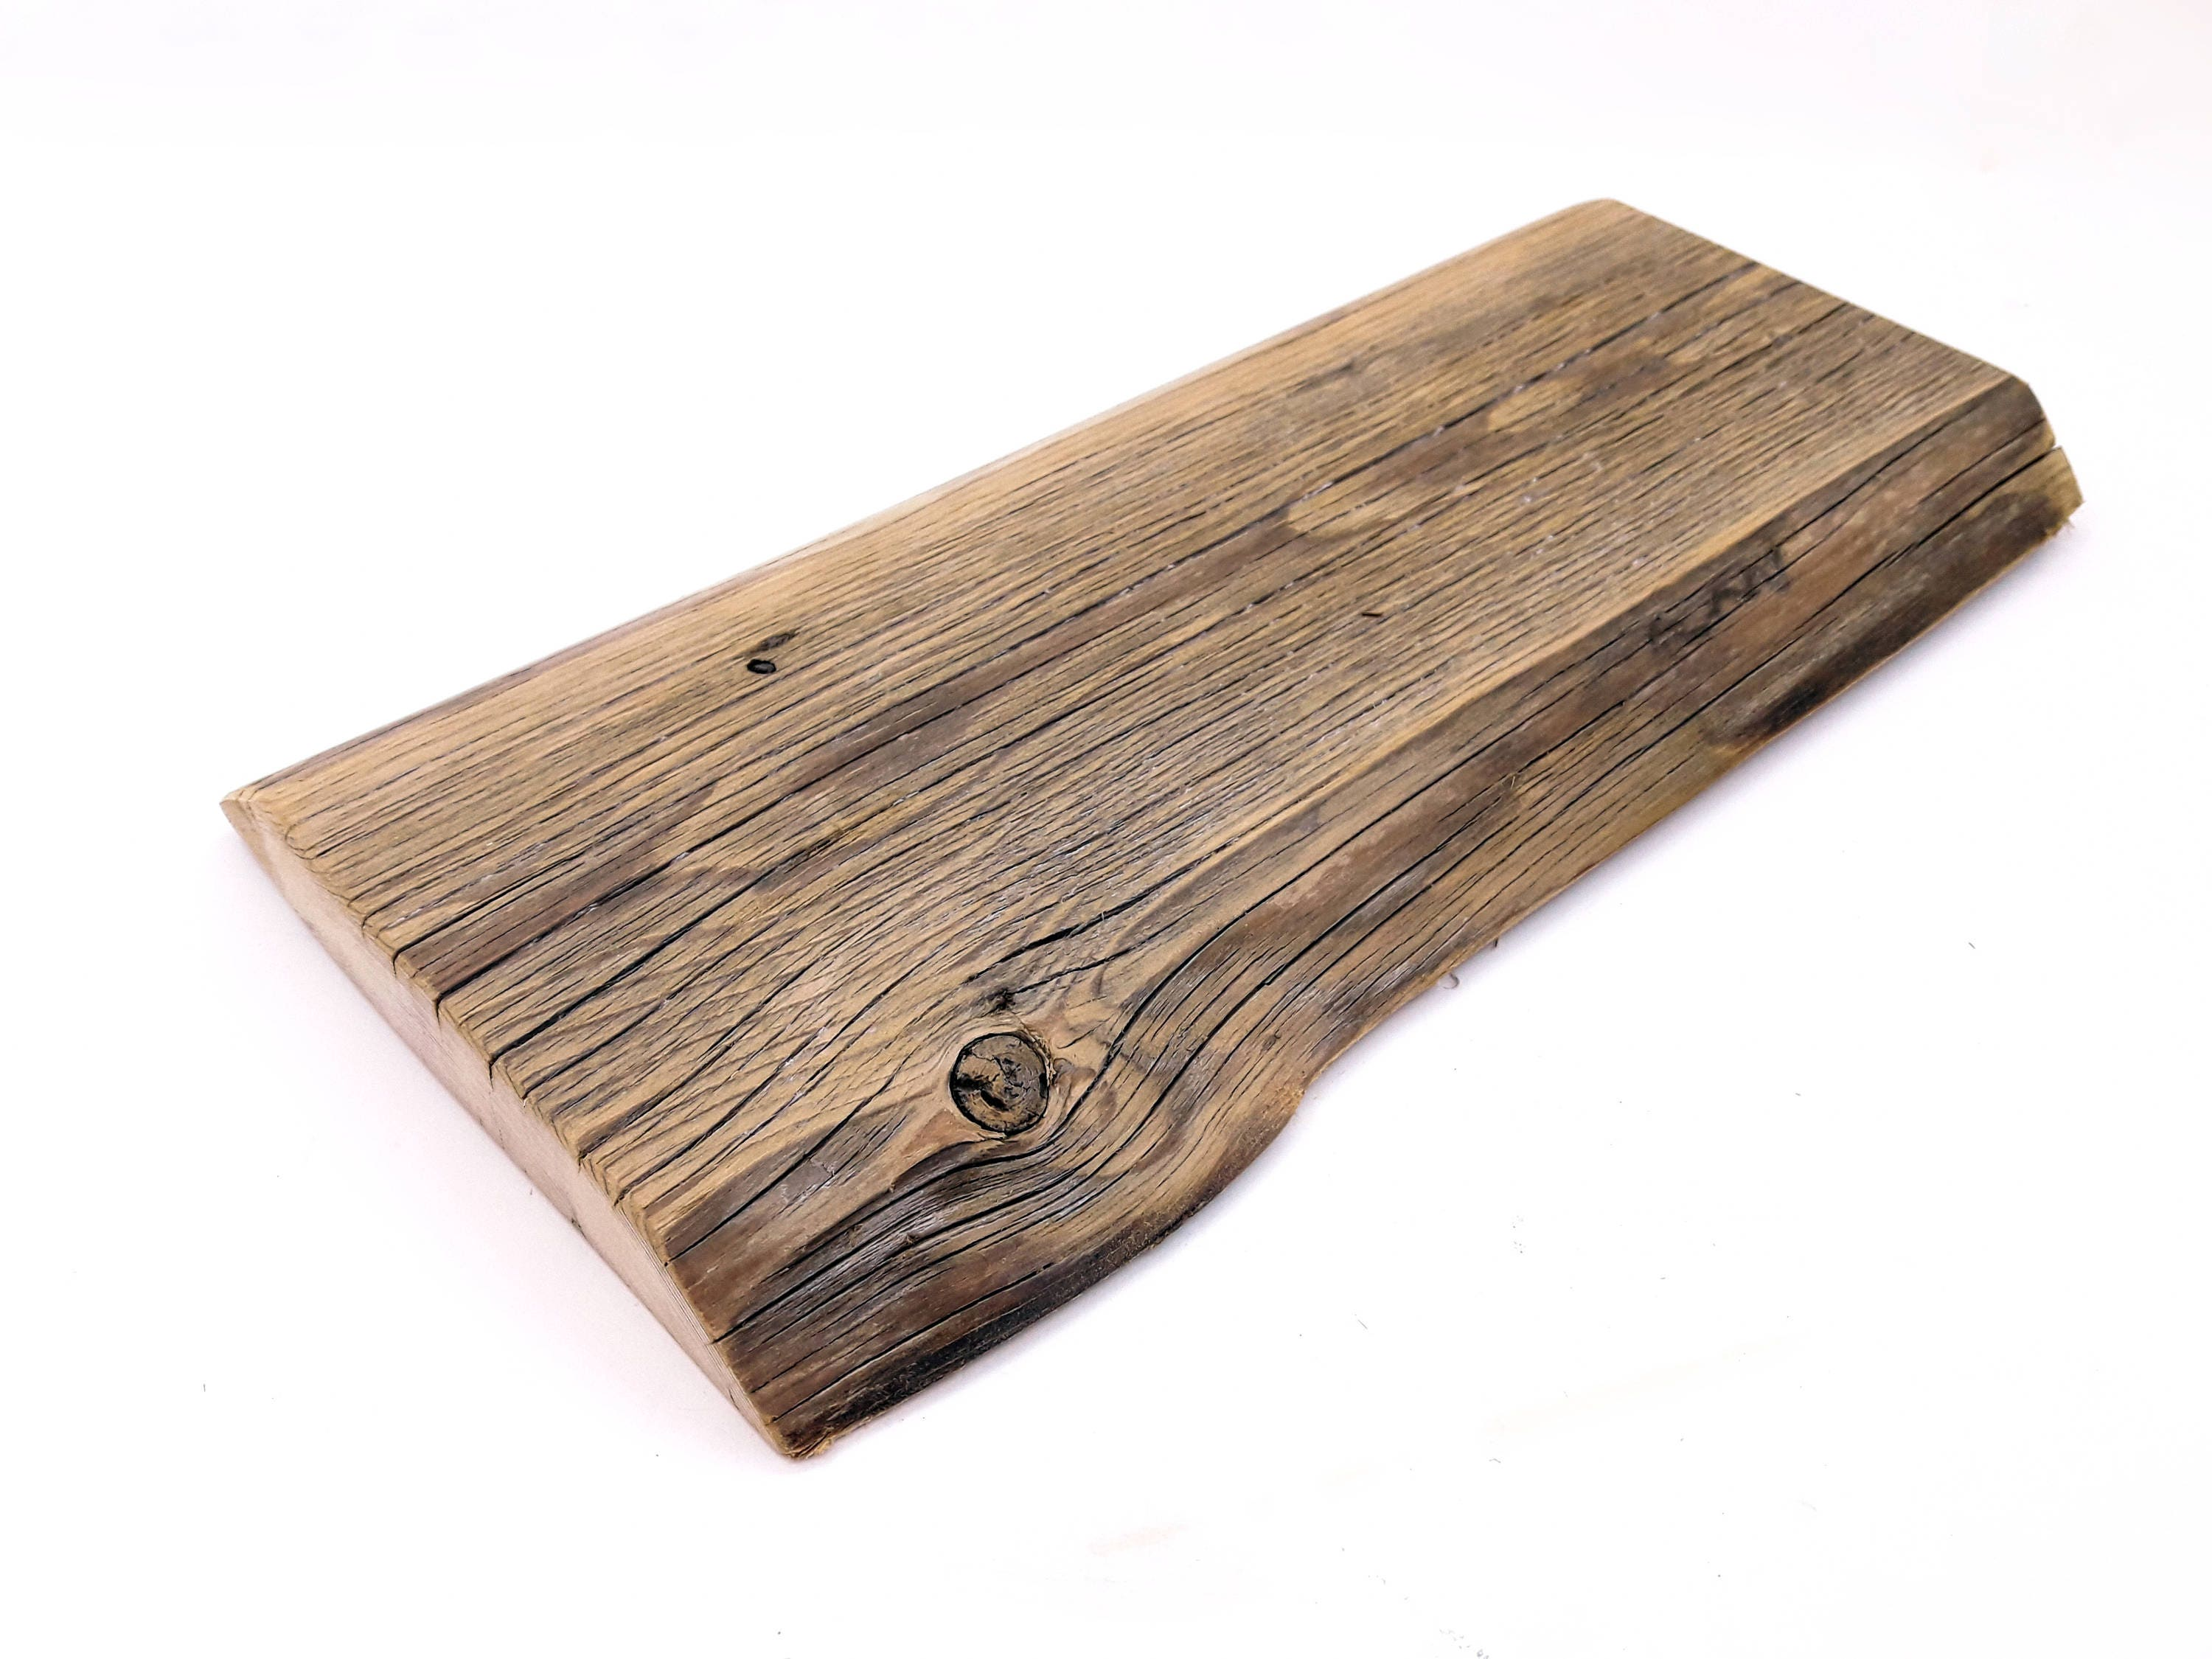 Barnwood Pieces Old Reclaimed Barn Wood Plank Sign Craft Supply Aged Wood